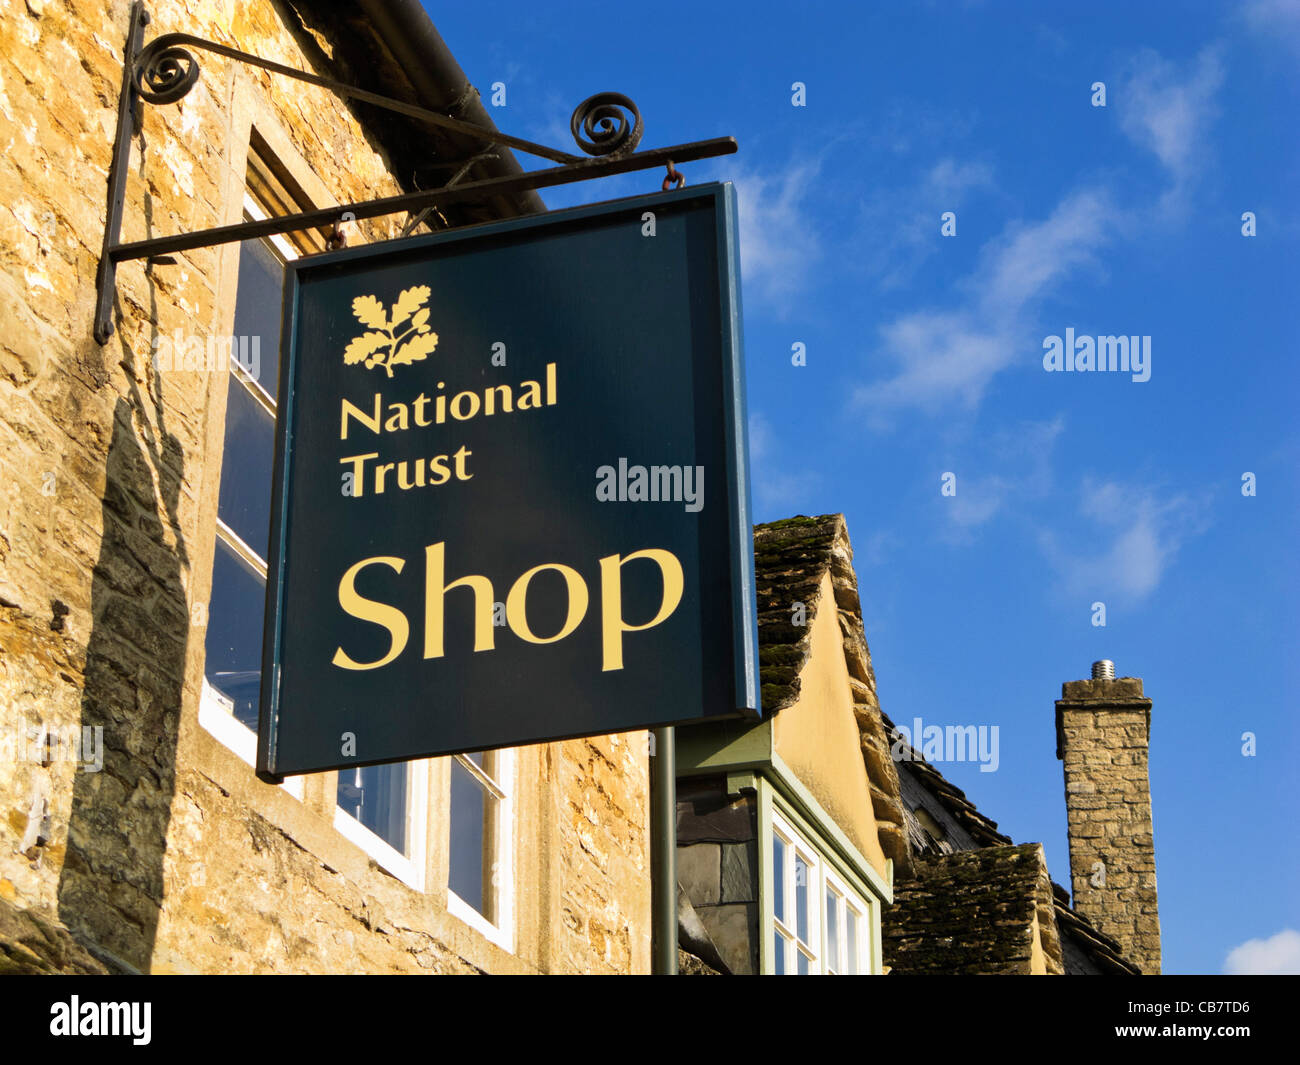 Trusted Shops Login : national trust logo stock photos national trust logo stock images alamy ~ Watch28wear.com Haus und Dekorationen